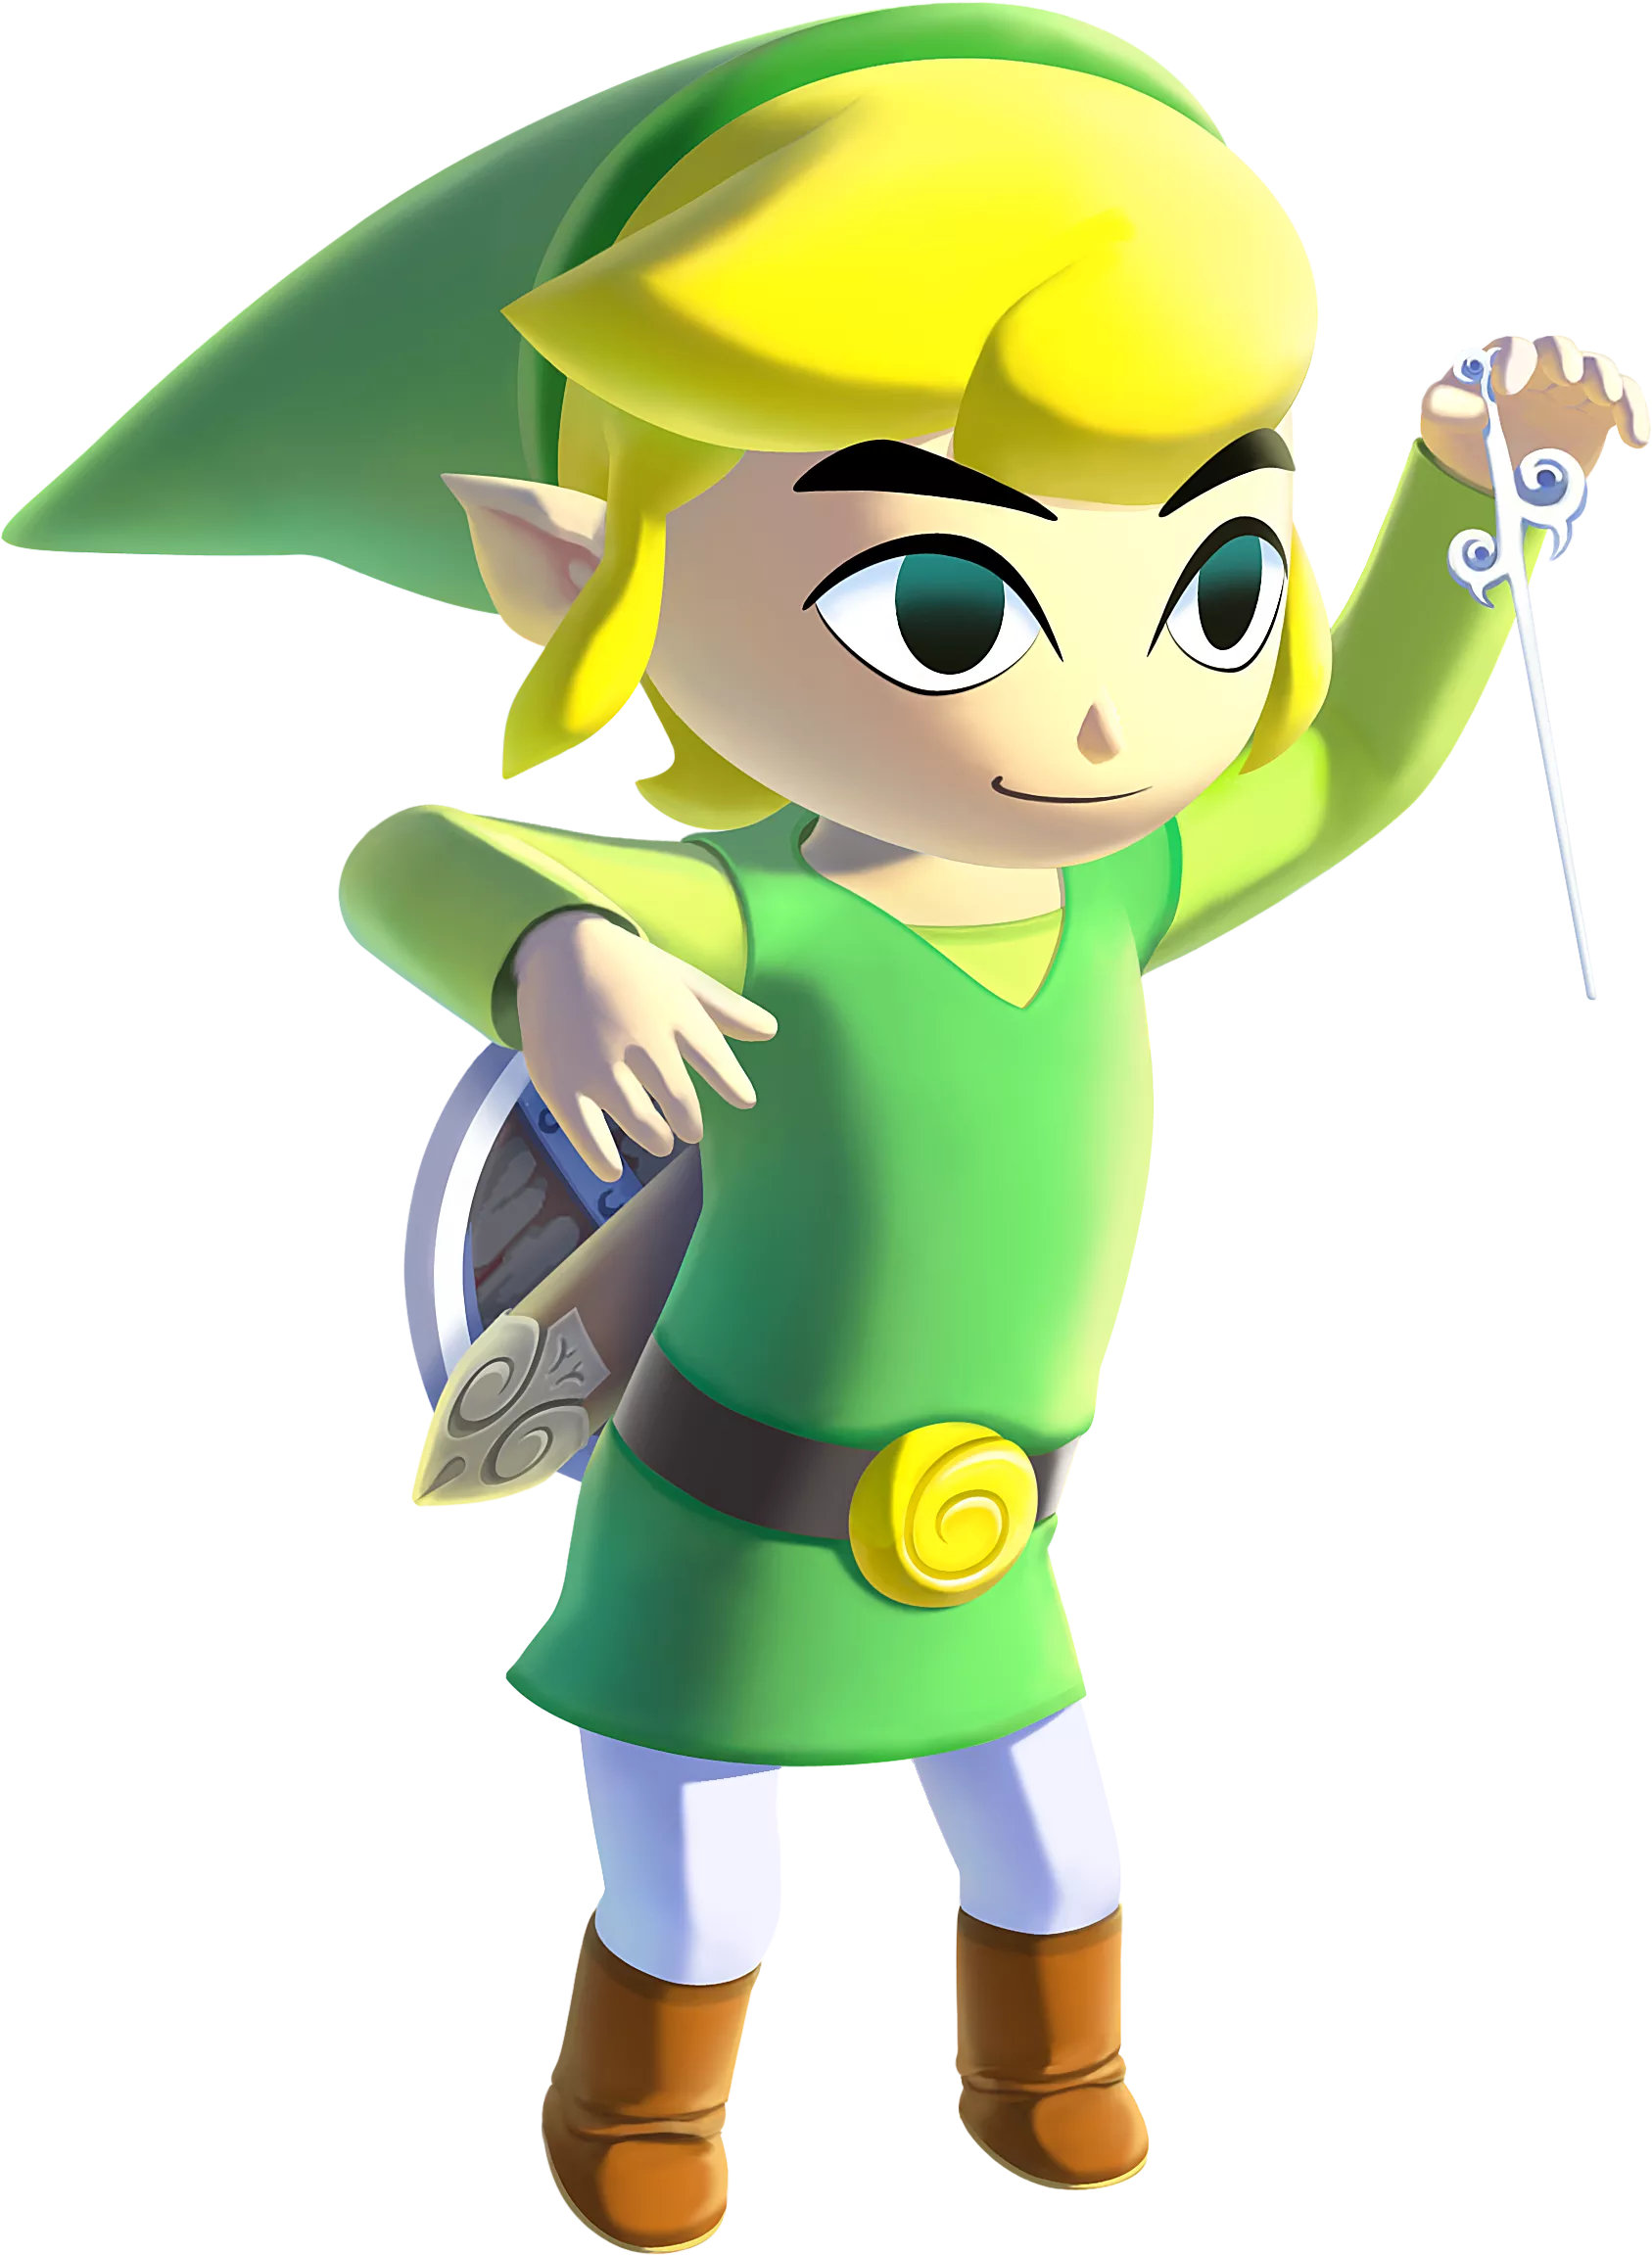 Same Links From Different Zelda Series